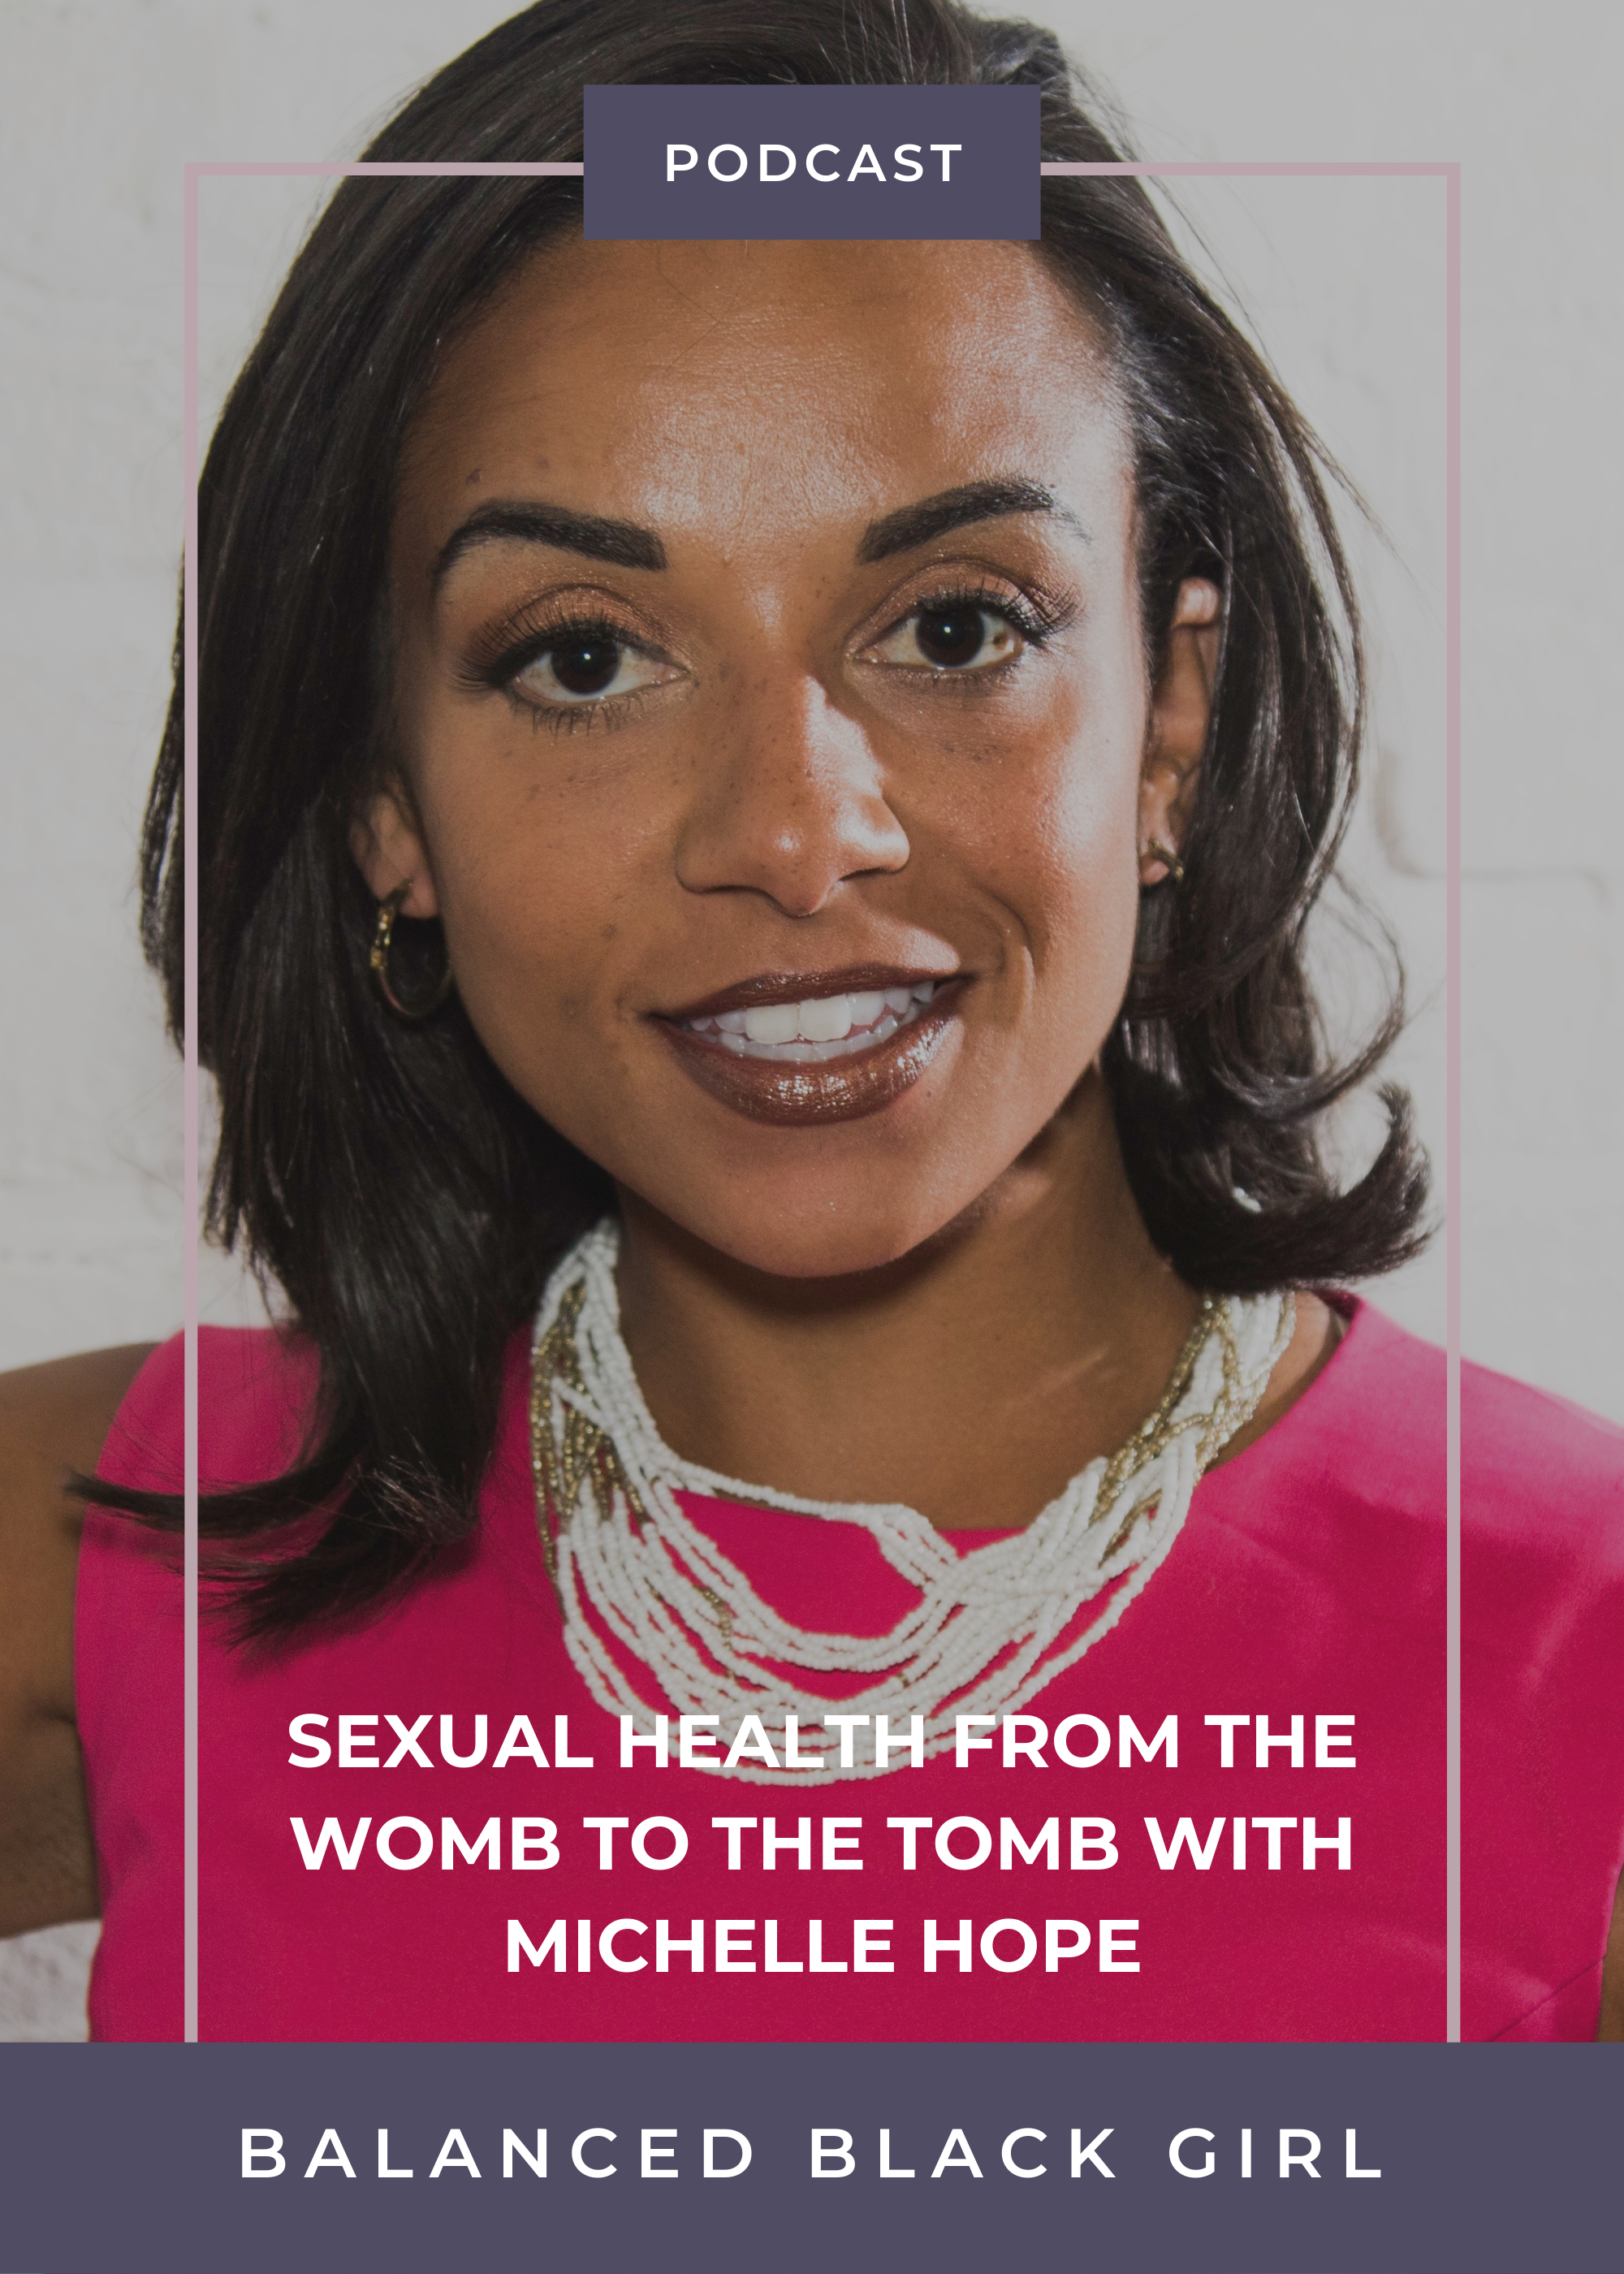 Episode 41: Sexual Health from the Womb to the Tomb with Michelle Hope